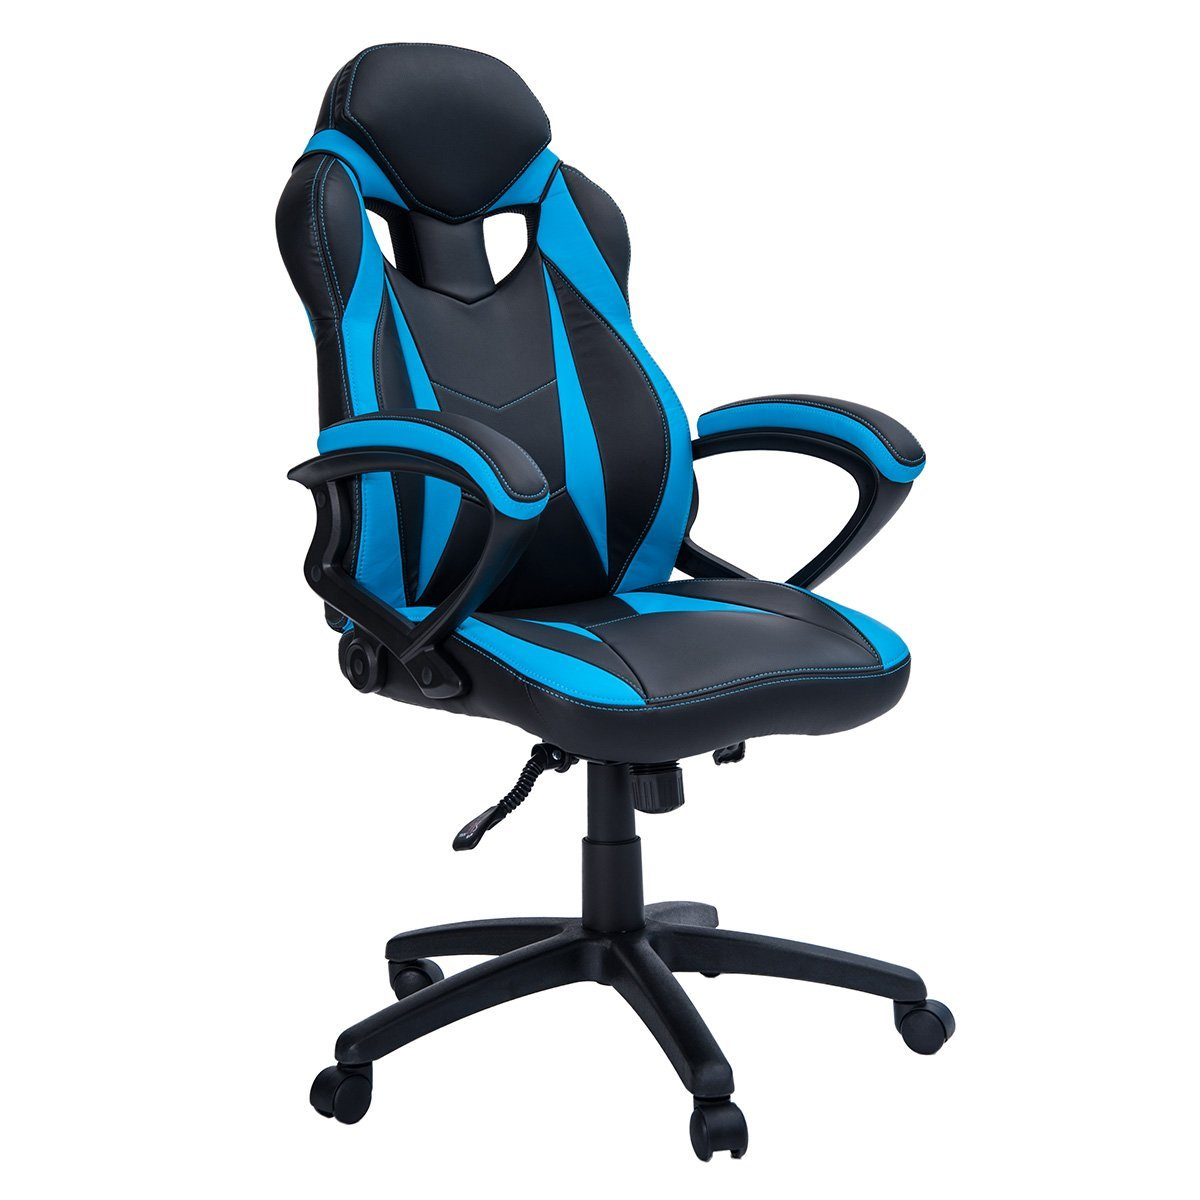 expensive gaming chair chef cushions best cheap chairs merax ergonomics review